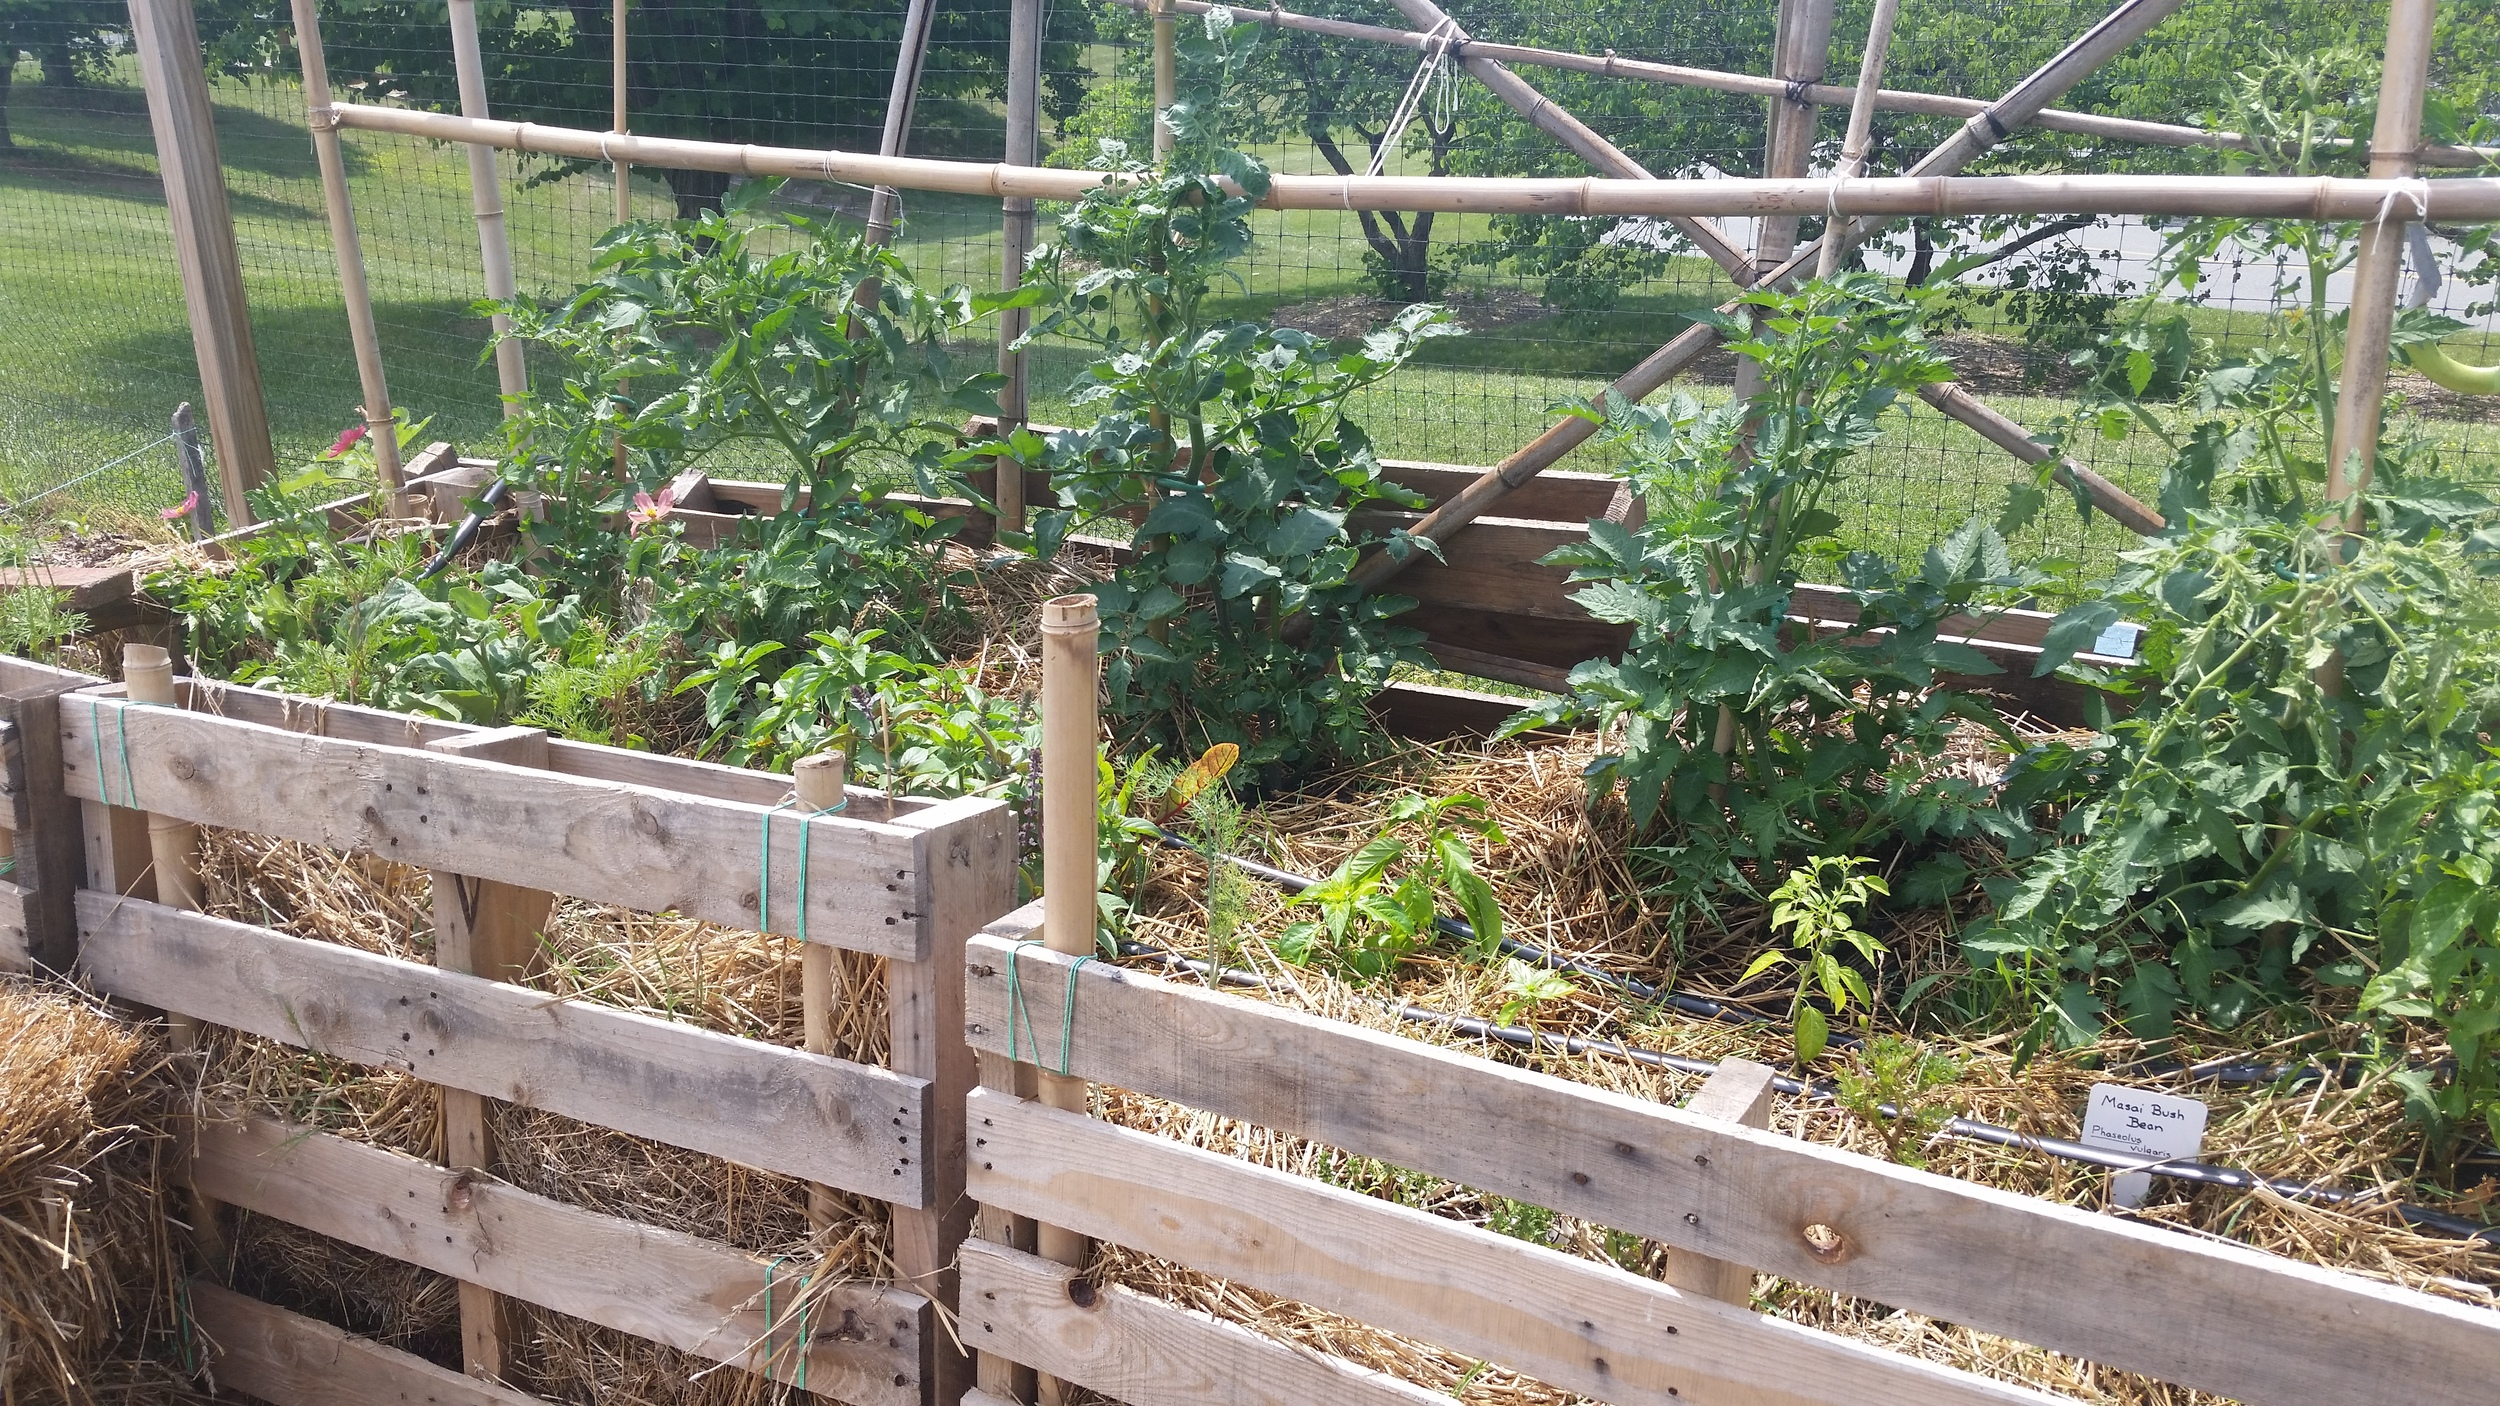 Strawbale garden with pallets used for greater structural integrity.